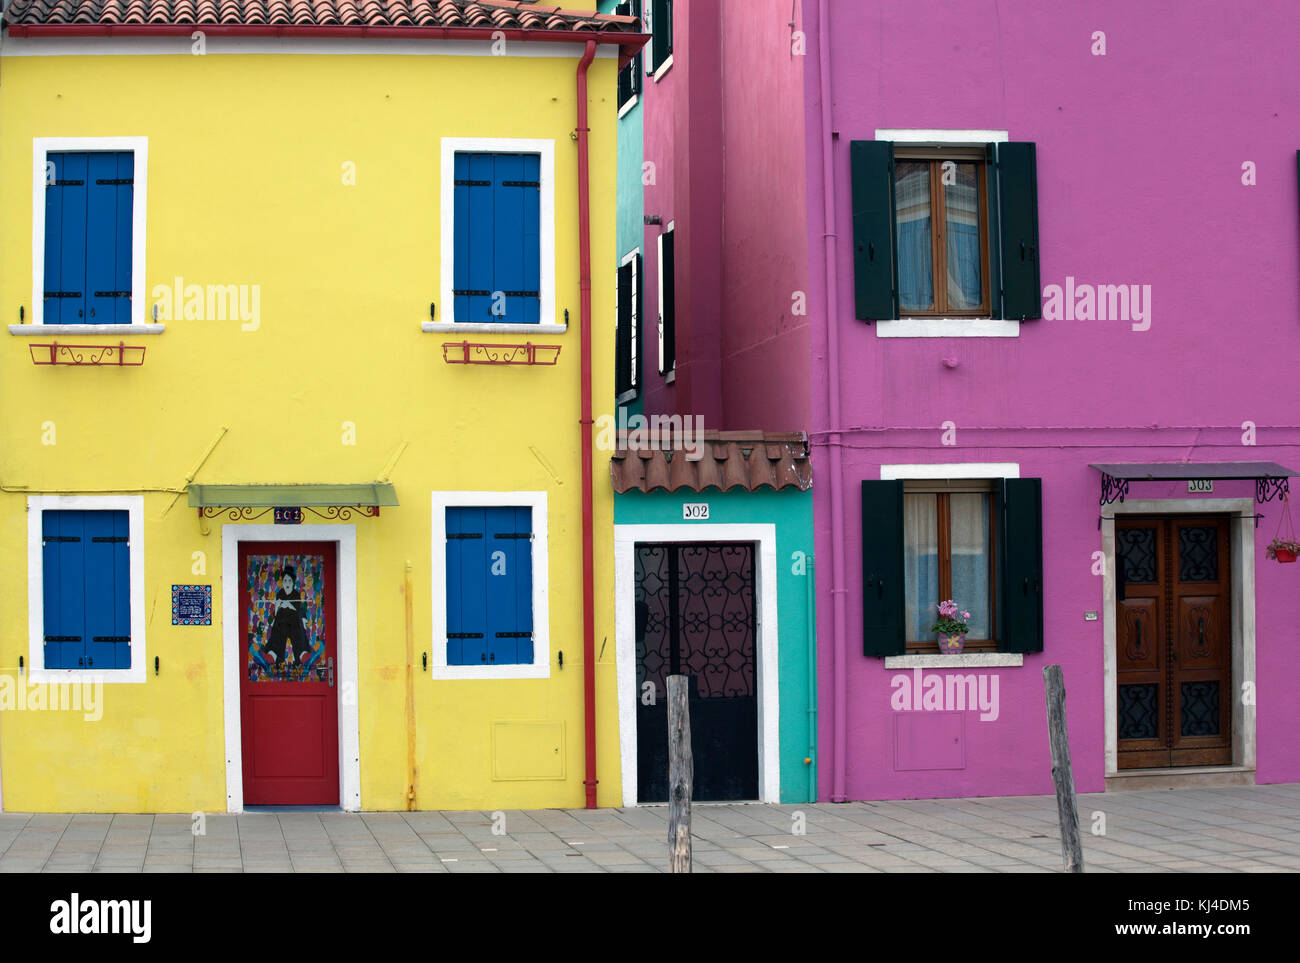 Purple Walls Stock Photos & Purple Walls Stock Images - Alamy